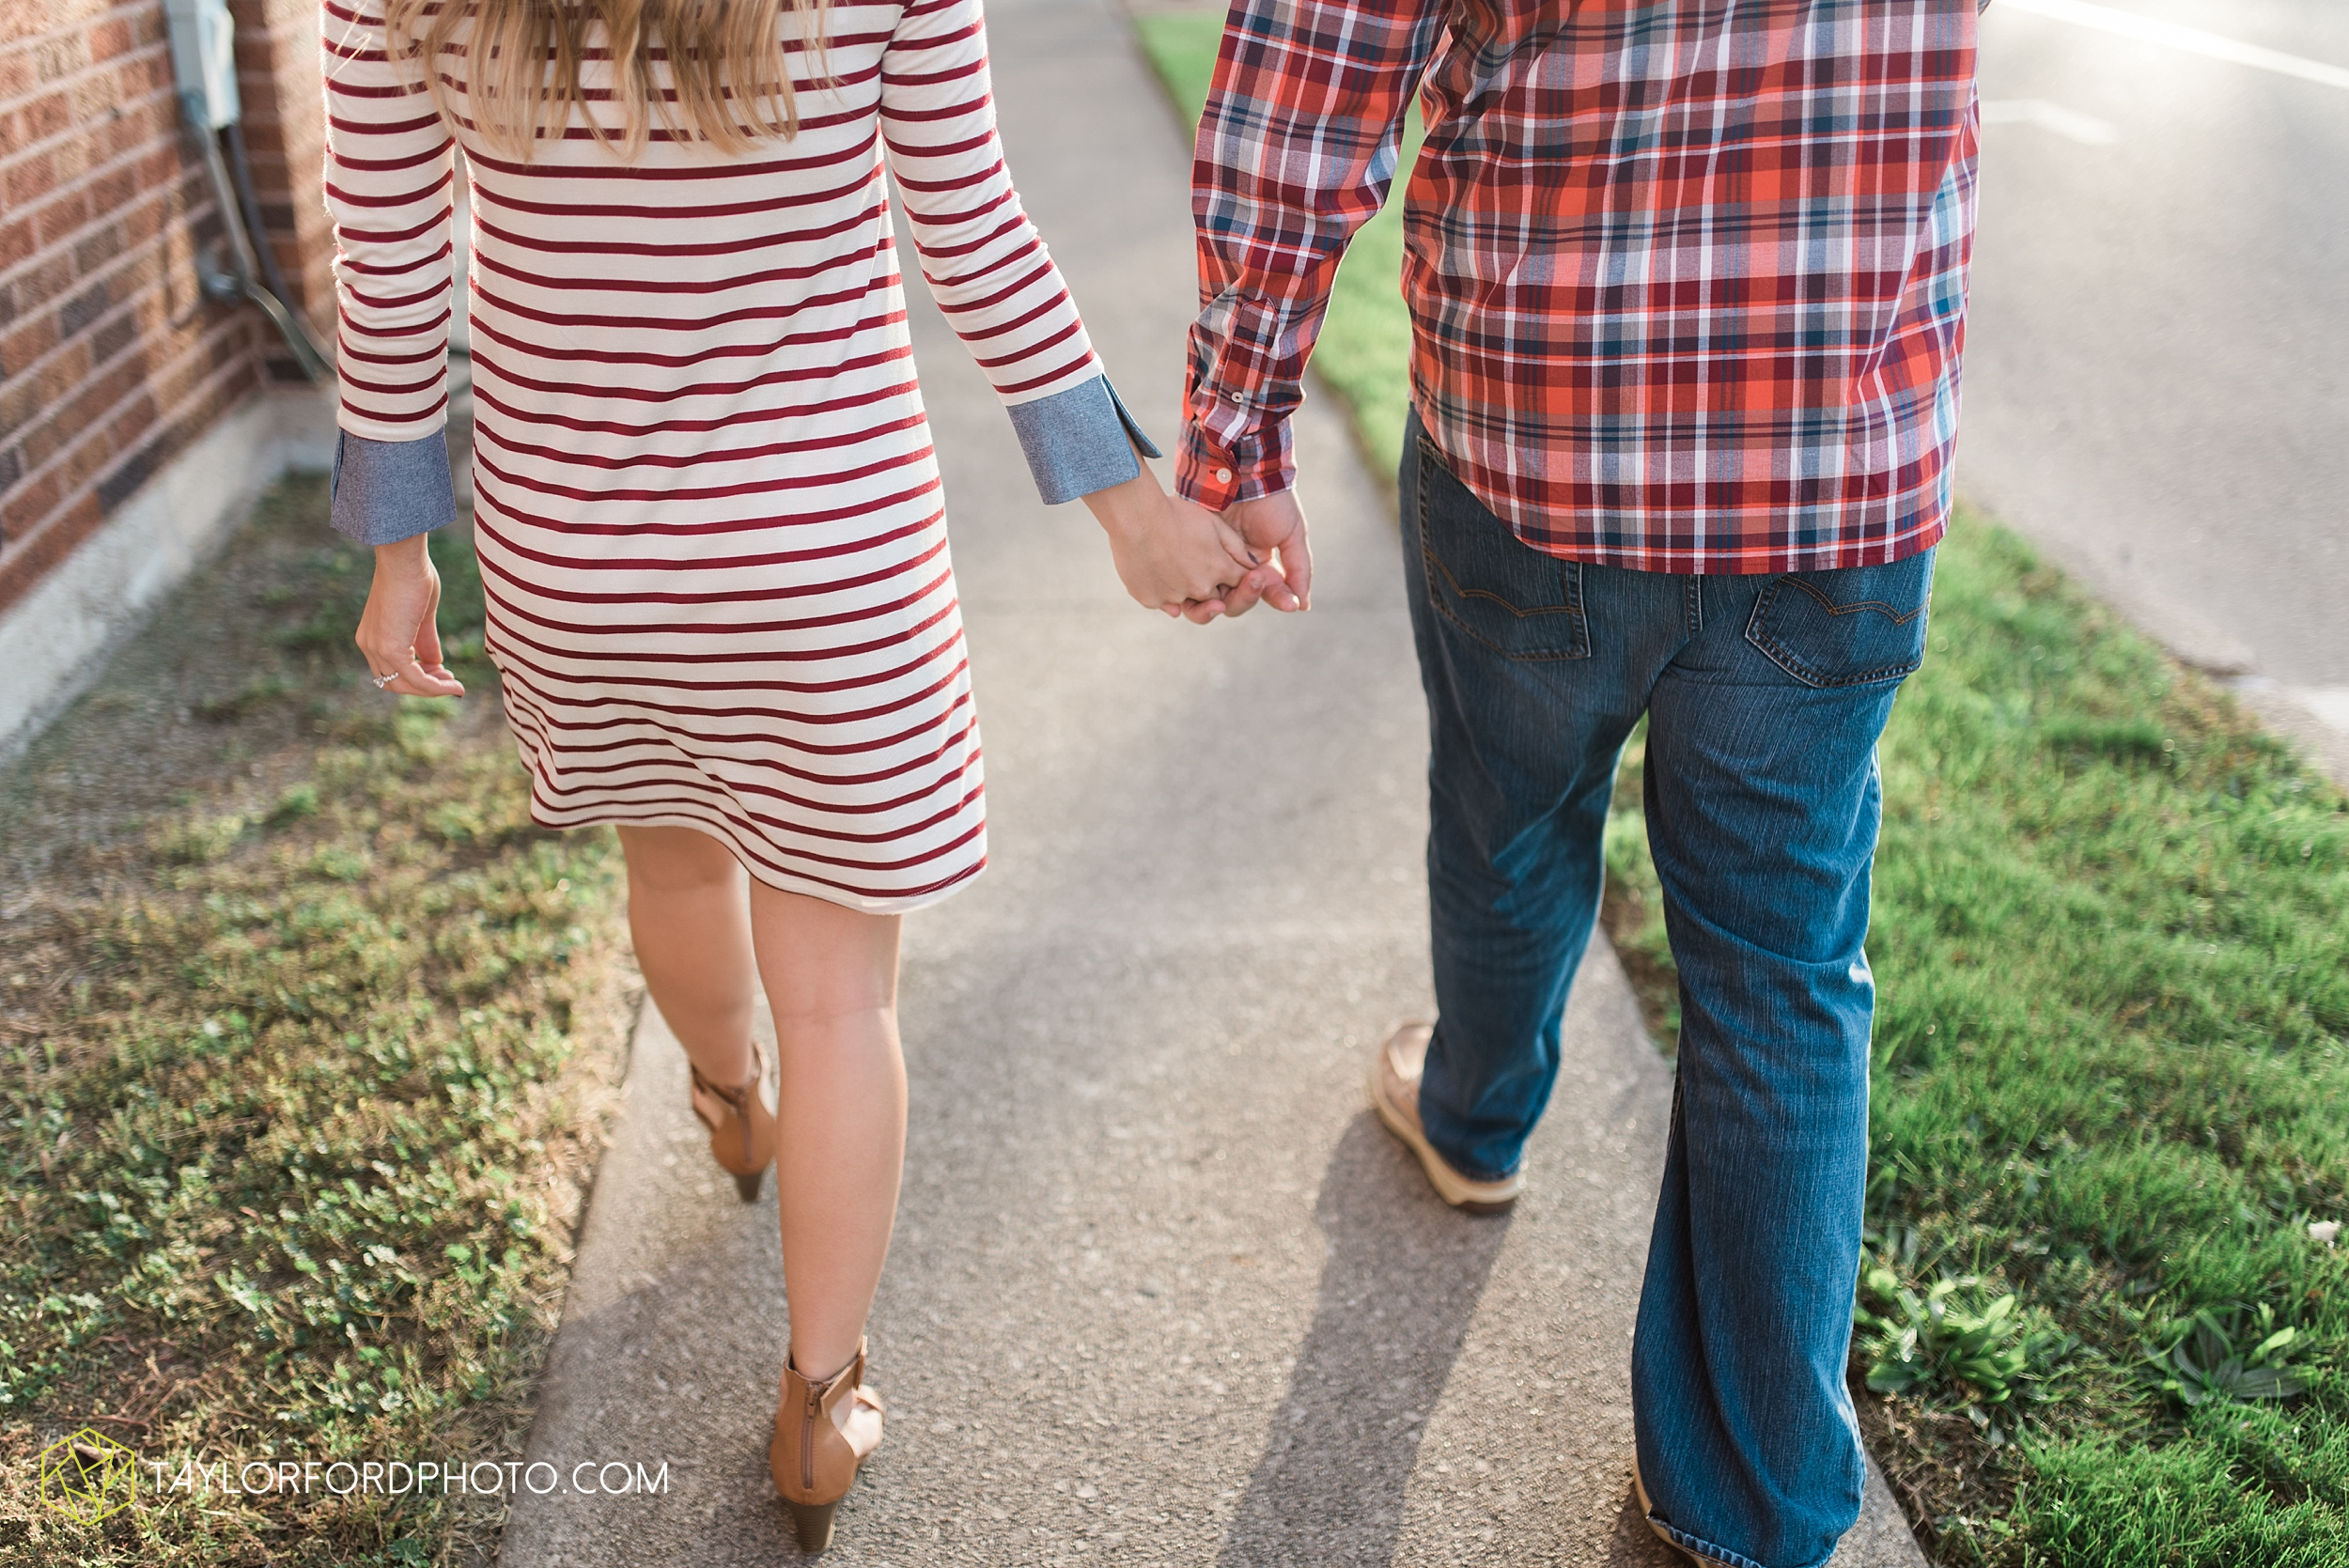 van-wert-ohio-engagement-wedding-photographer-Taylor-Ford-Photography-fall-farm-nature_4059.jpg